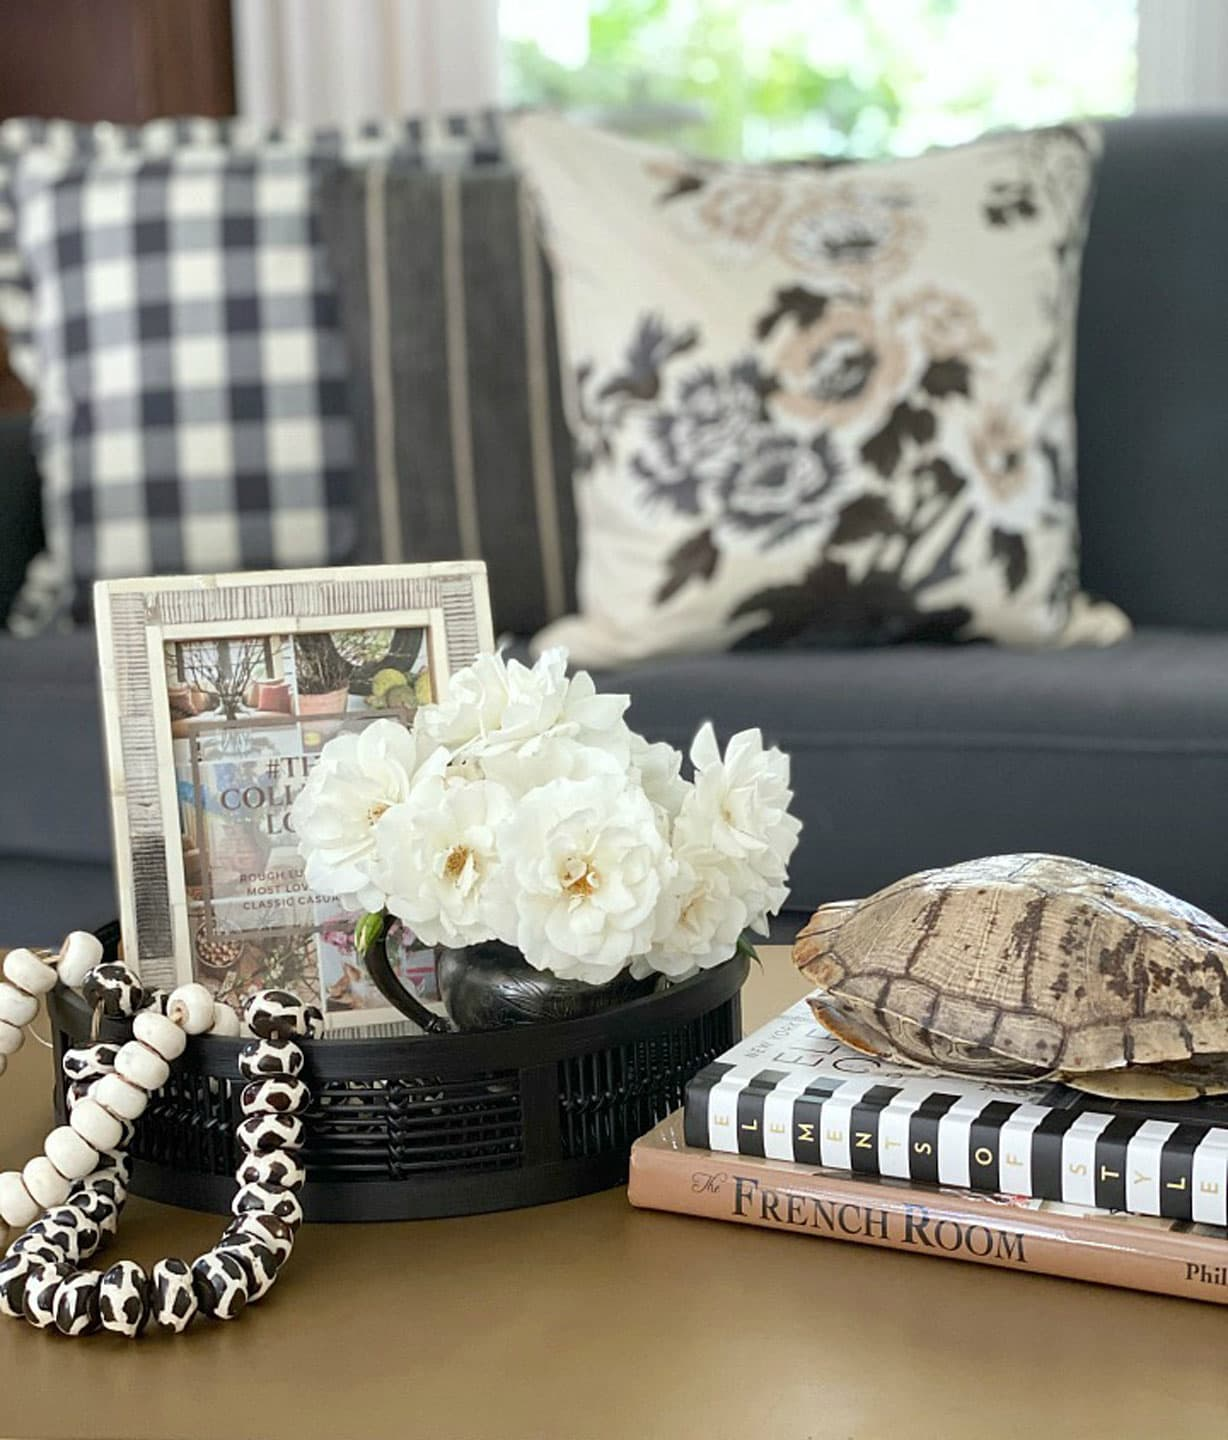 Lifestyle Blogger Annie Diamond joins the Decorating Tips & Tricks Podcast with her friends Cindy Hattersley and Mary Ann Picket